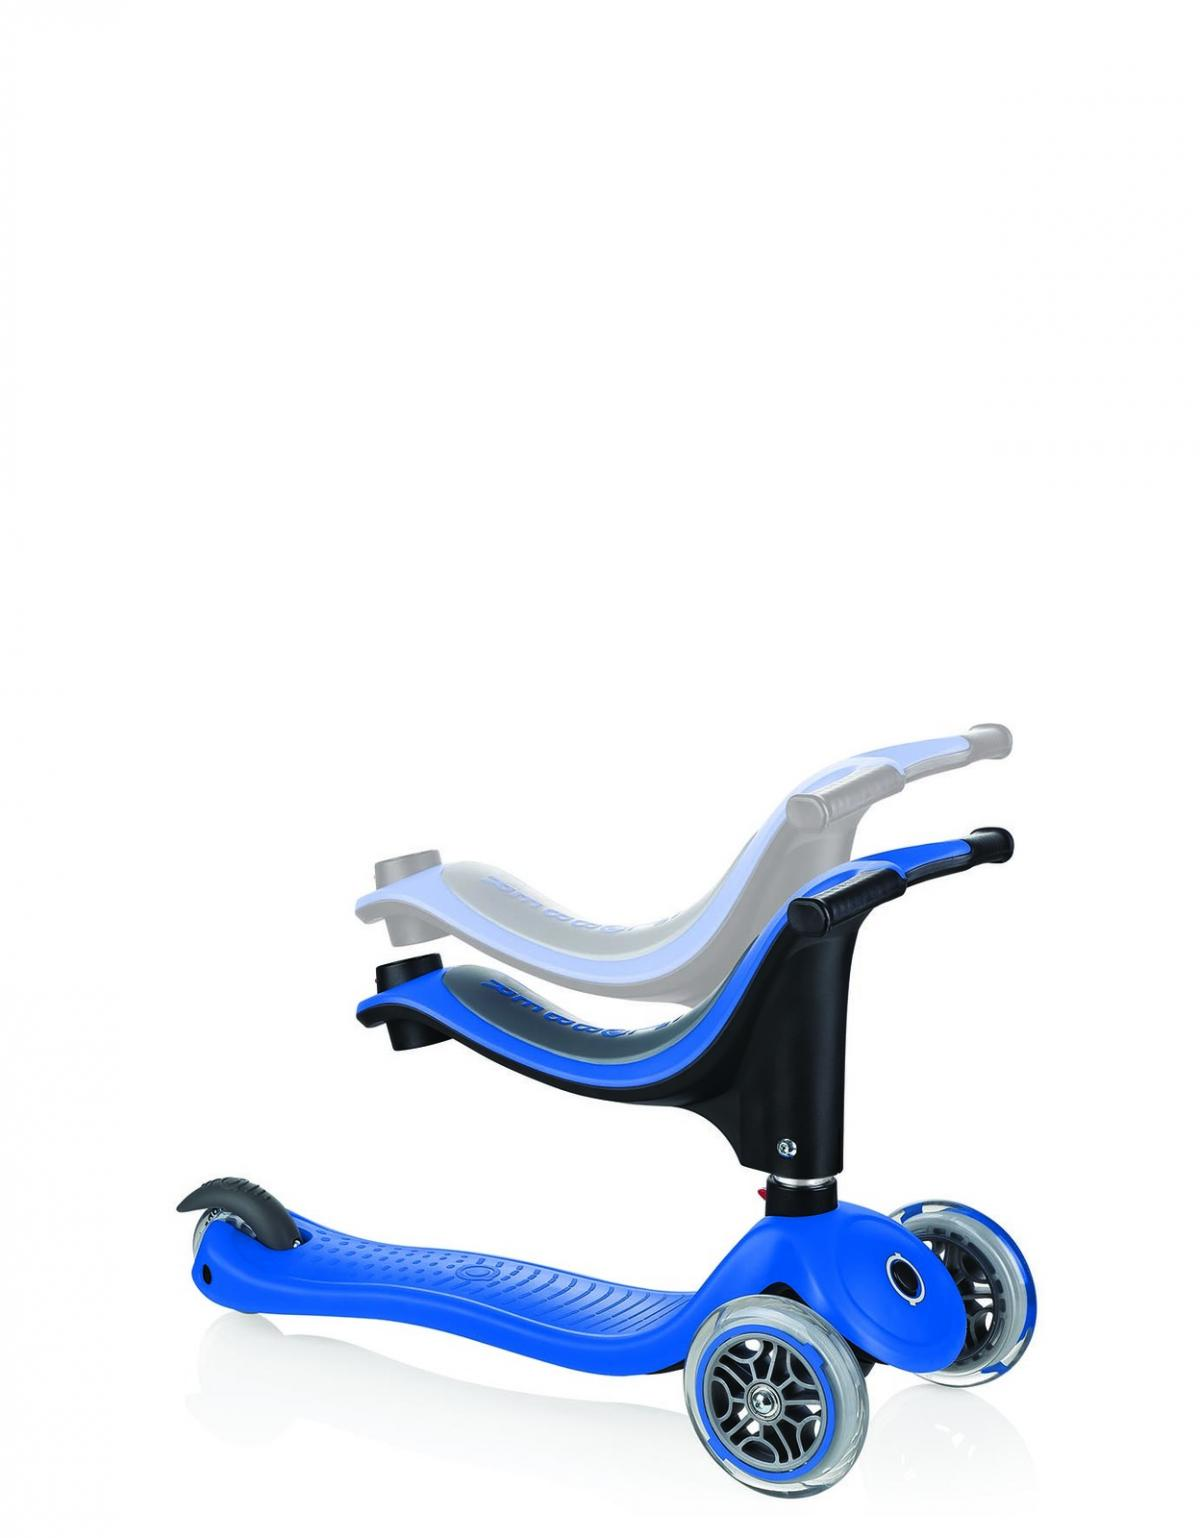 2019 Globber 4 In 1 Scooter with seat height adjustment